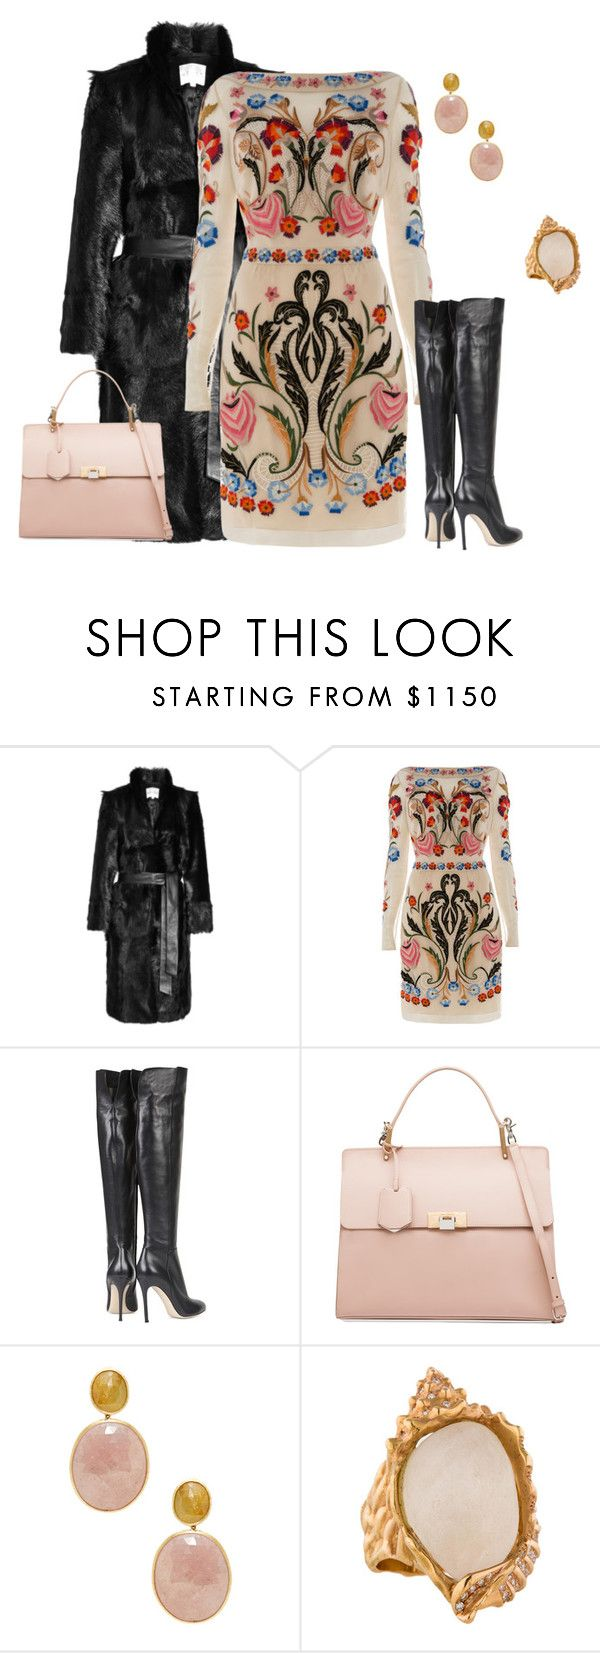 """outfit1491"" by natalyag ❤ liked on Polyvore featuring Reiss, Temperley London, Gianvito Rossi, Balenciaga and Marco Bicego"